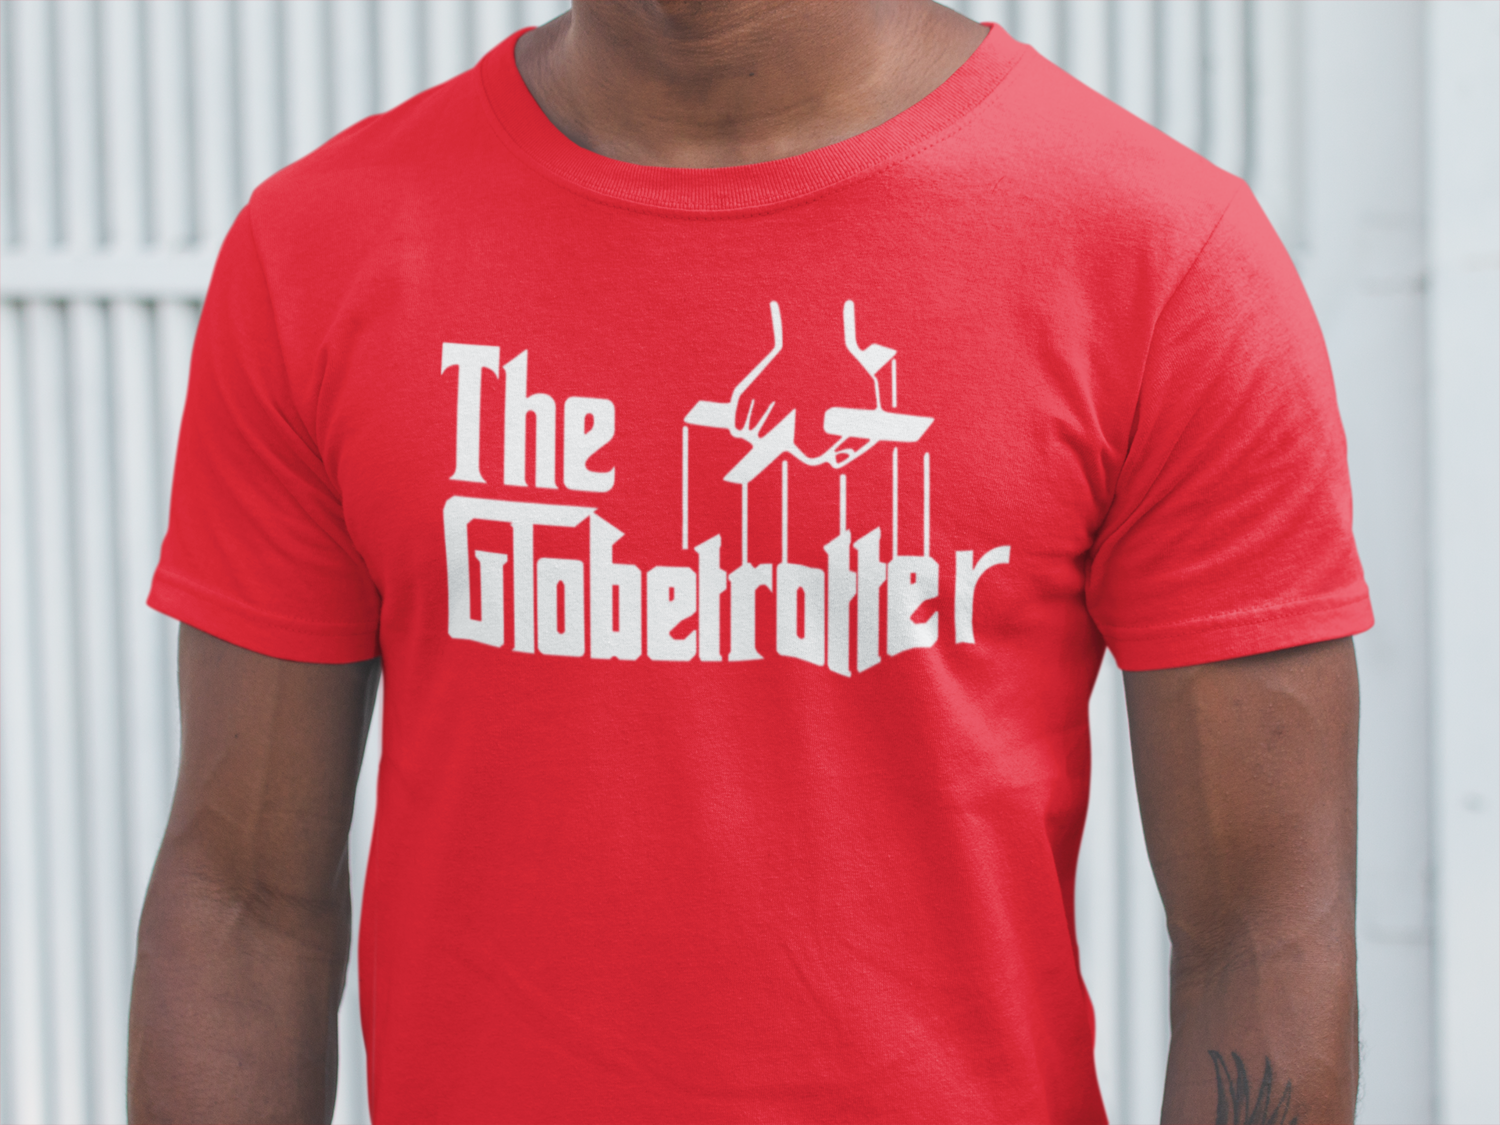 The Globetrotter Tee